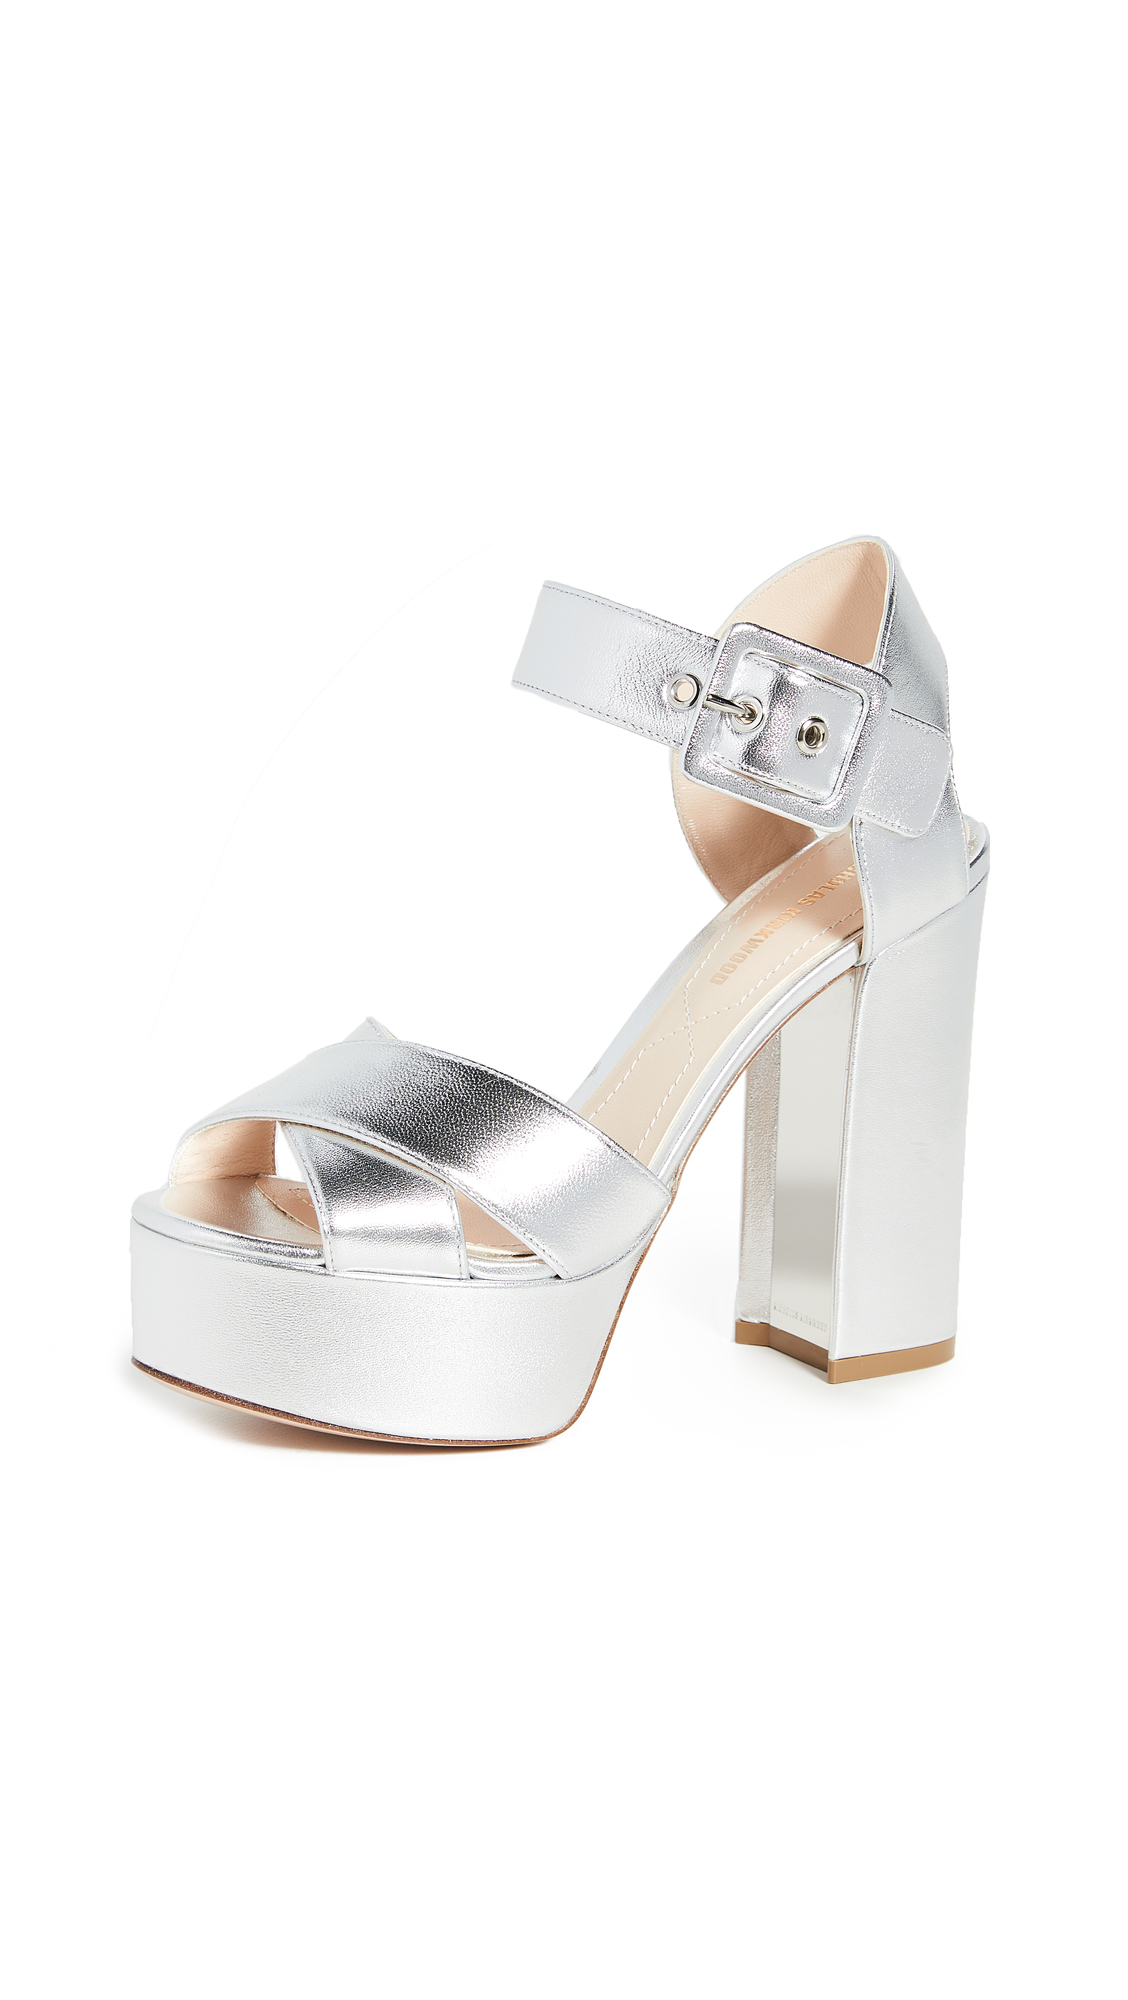 Buy Nicholas Kirkwood Elements Platform Sandals online, shop Nicholas Kirkwood